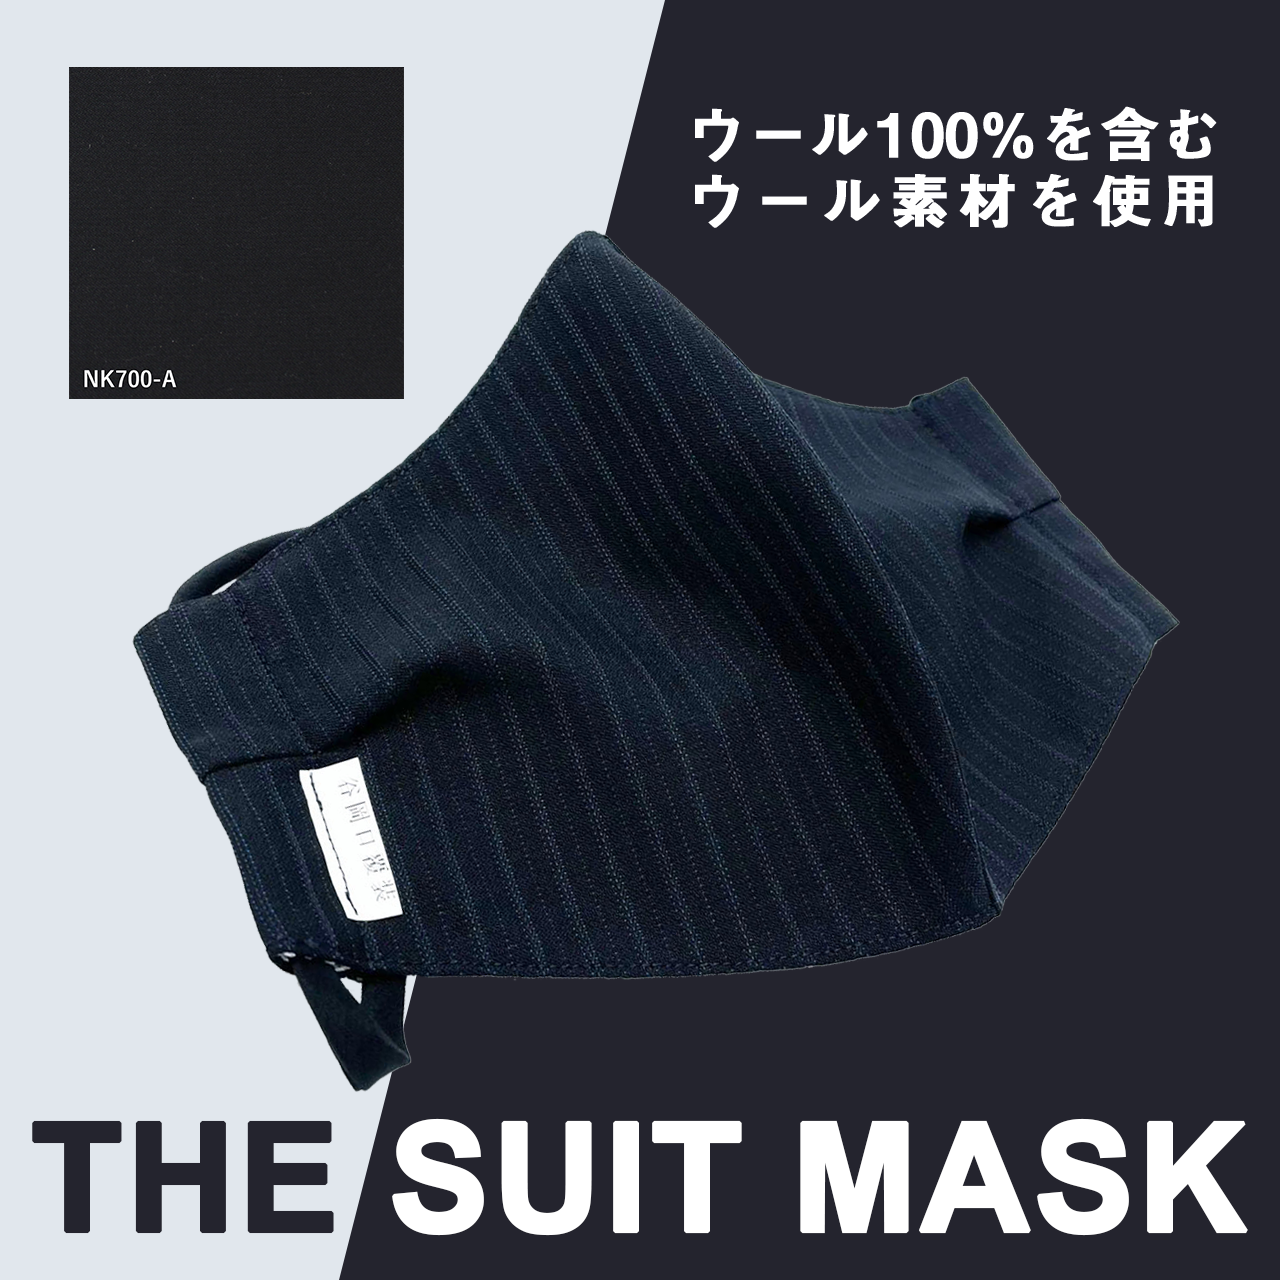 business or parttyに活躍 【THE SUIT MASK】マスクケース付 オーダーメイドマスク (NK700-A) ウォッシャブル不織布使用 ※全国発送無料